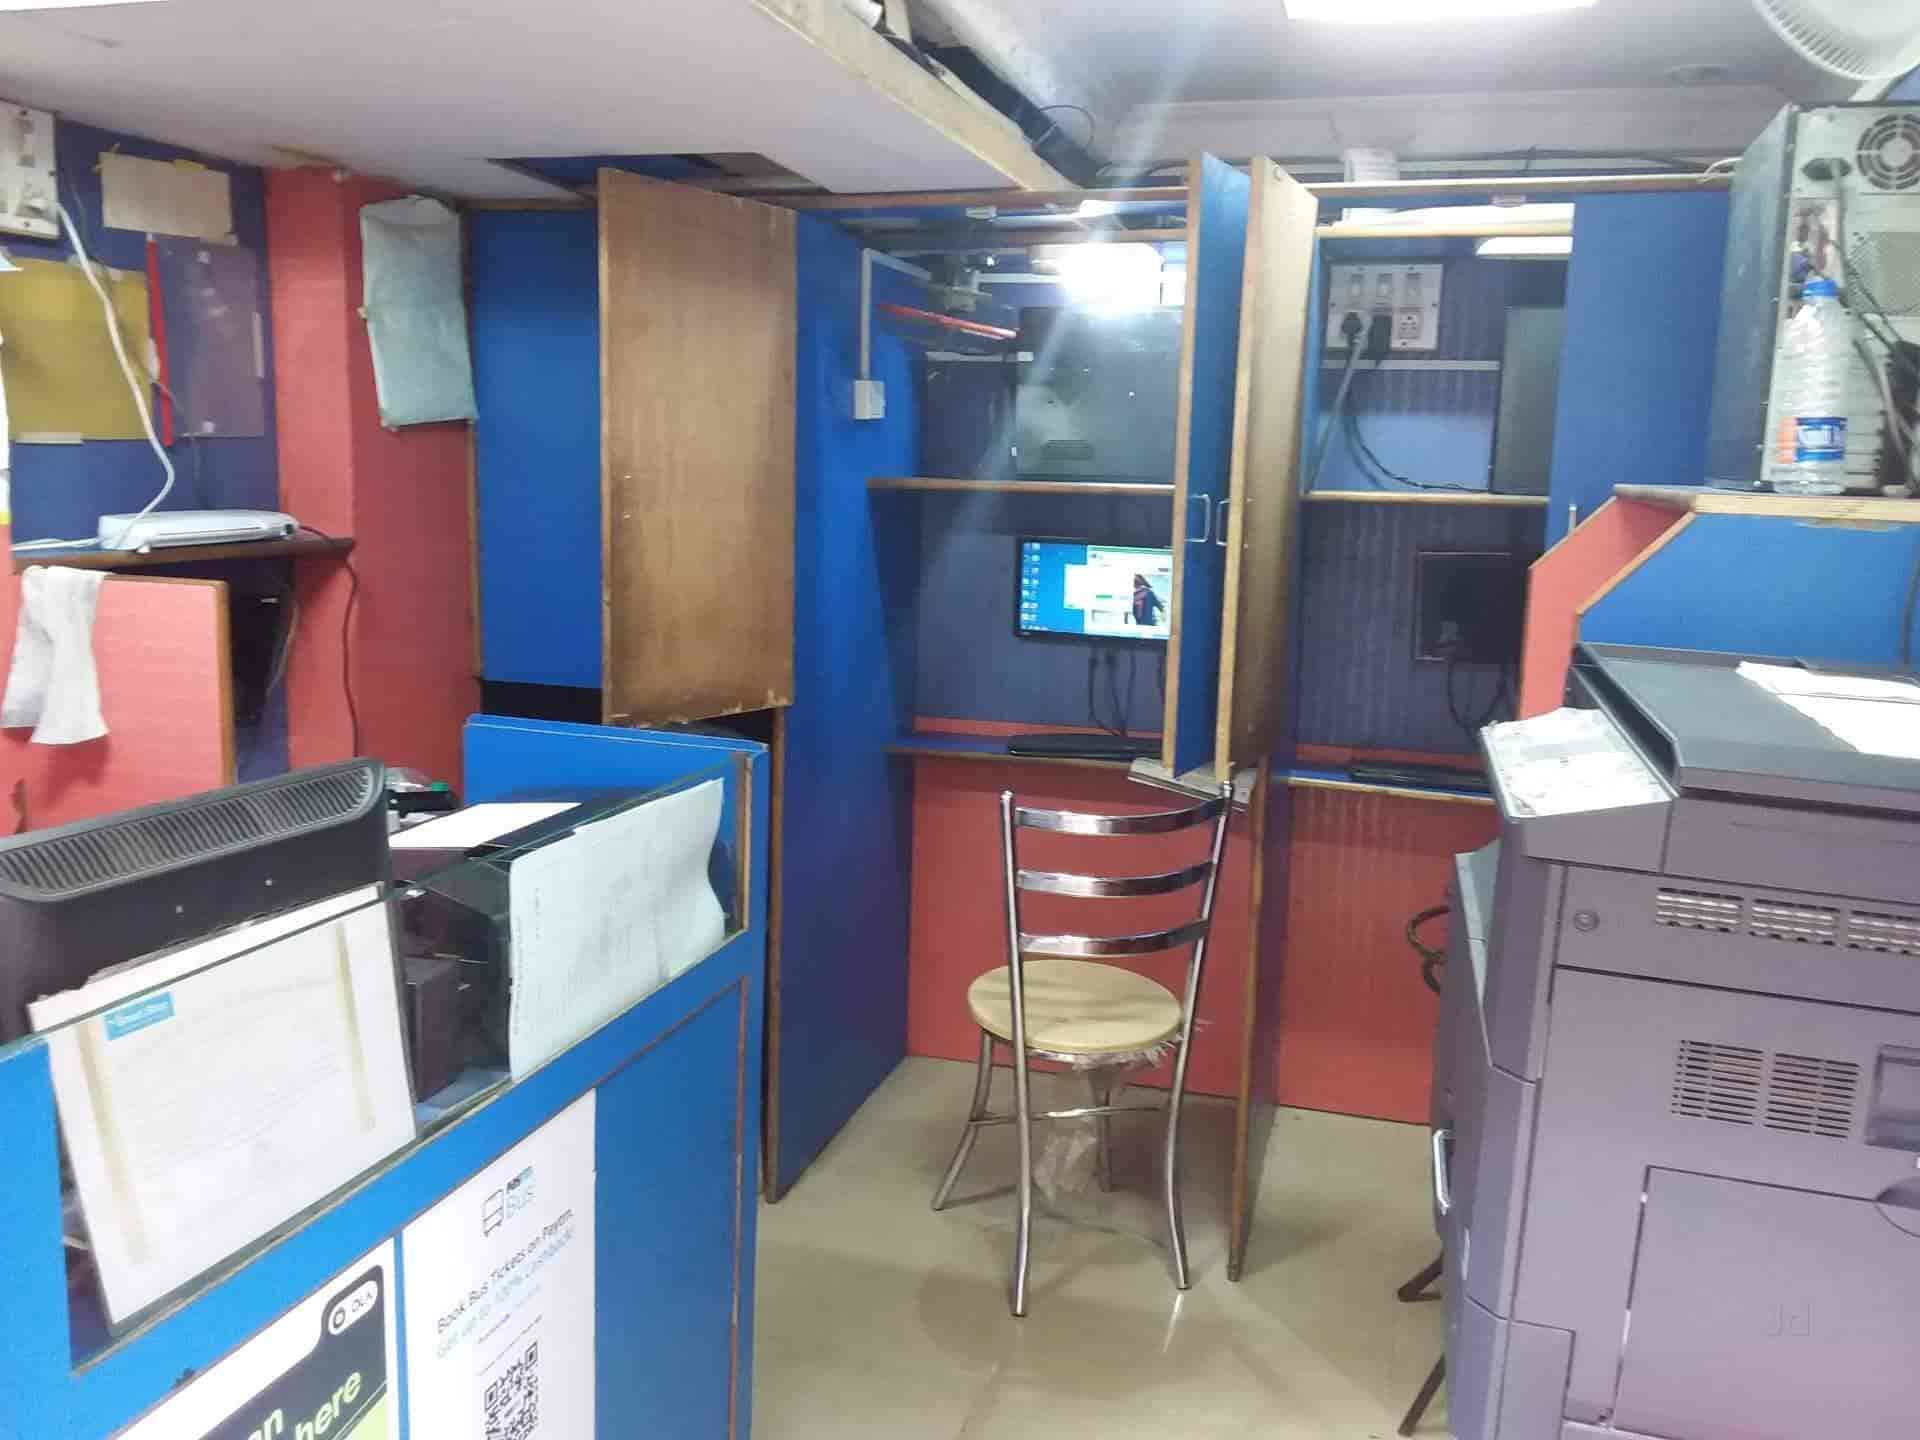 Top 50 24 Hours Cyber Cafe In Bangalore Best 24 Hours Internet Cafe Justdial